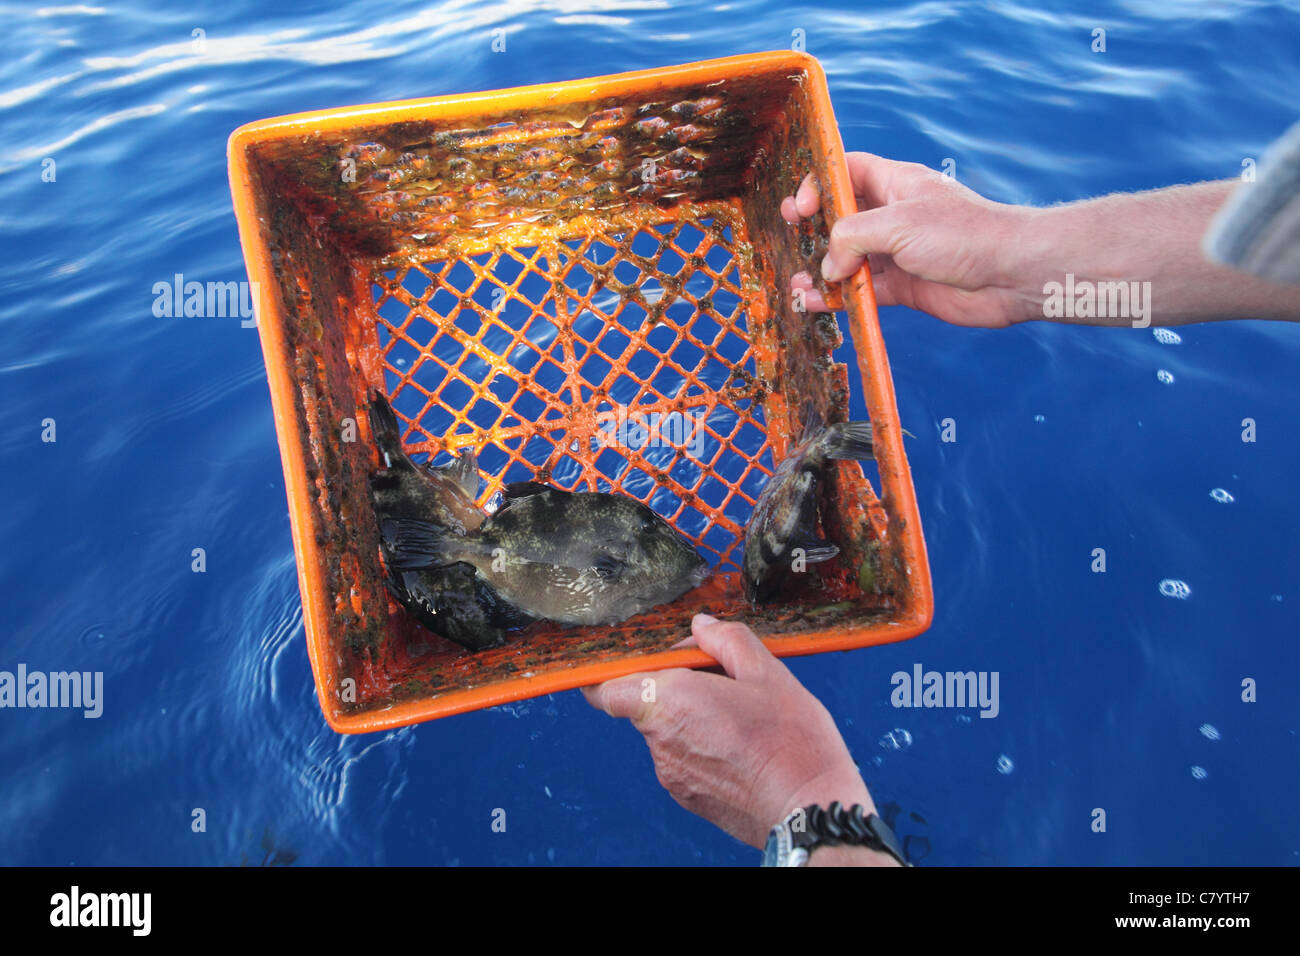 Grey triggerfish Balistes capriscus , sheltering in plastic box found floating on ocean surface, Azores August. - Stock Image